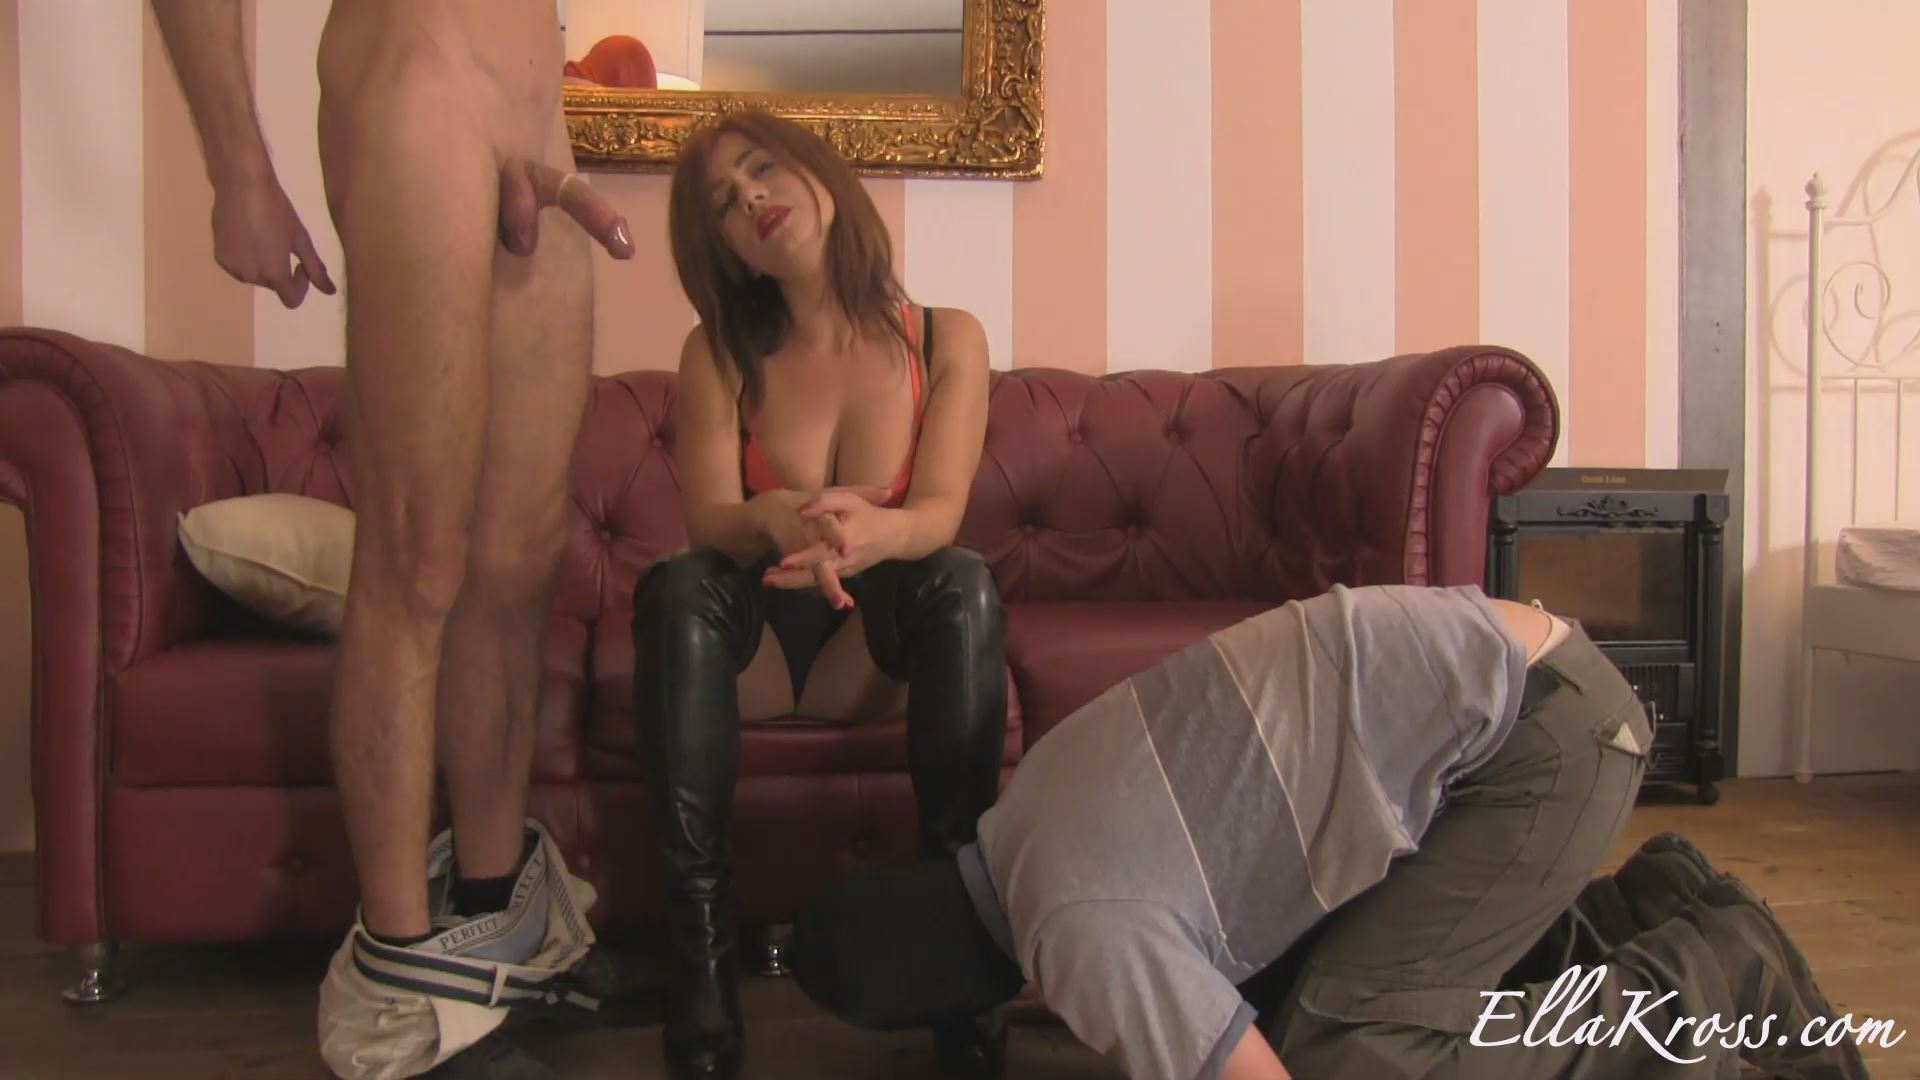 Mistress Ella Kross In Scene: Making a Potential Slave Suck Cock - ELLAKROSS - FULL HD/1080p/MP4